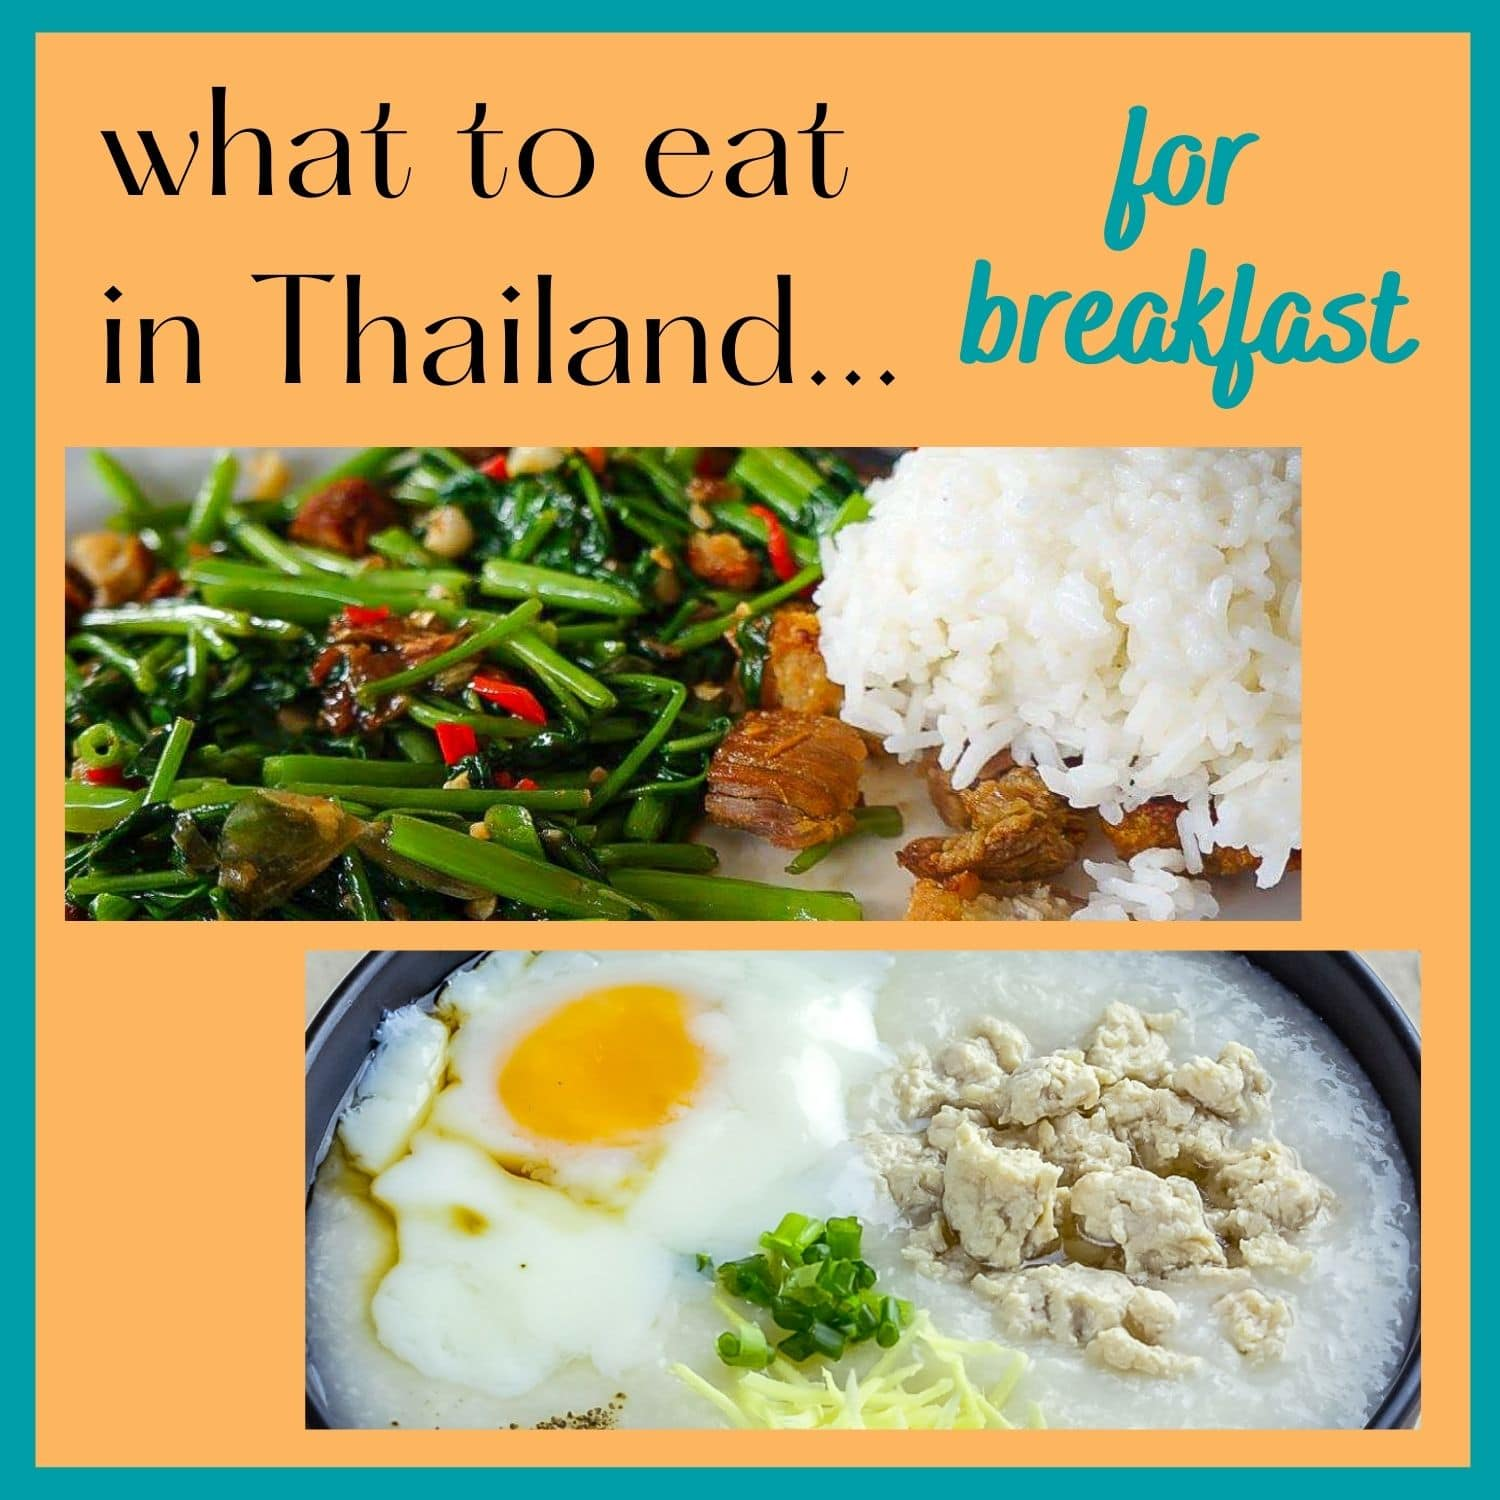 What to eat for breakfast in Thailand with text